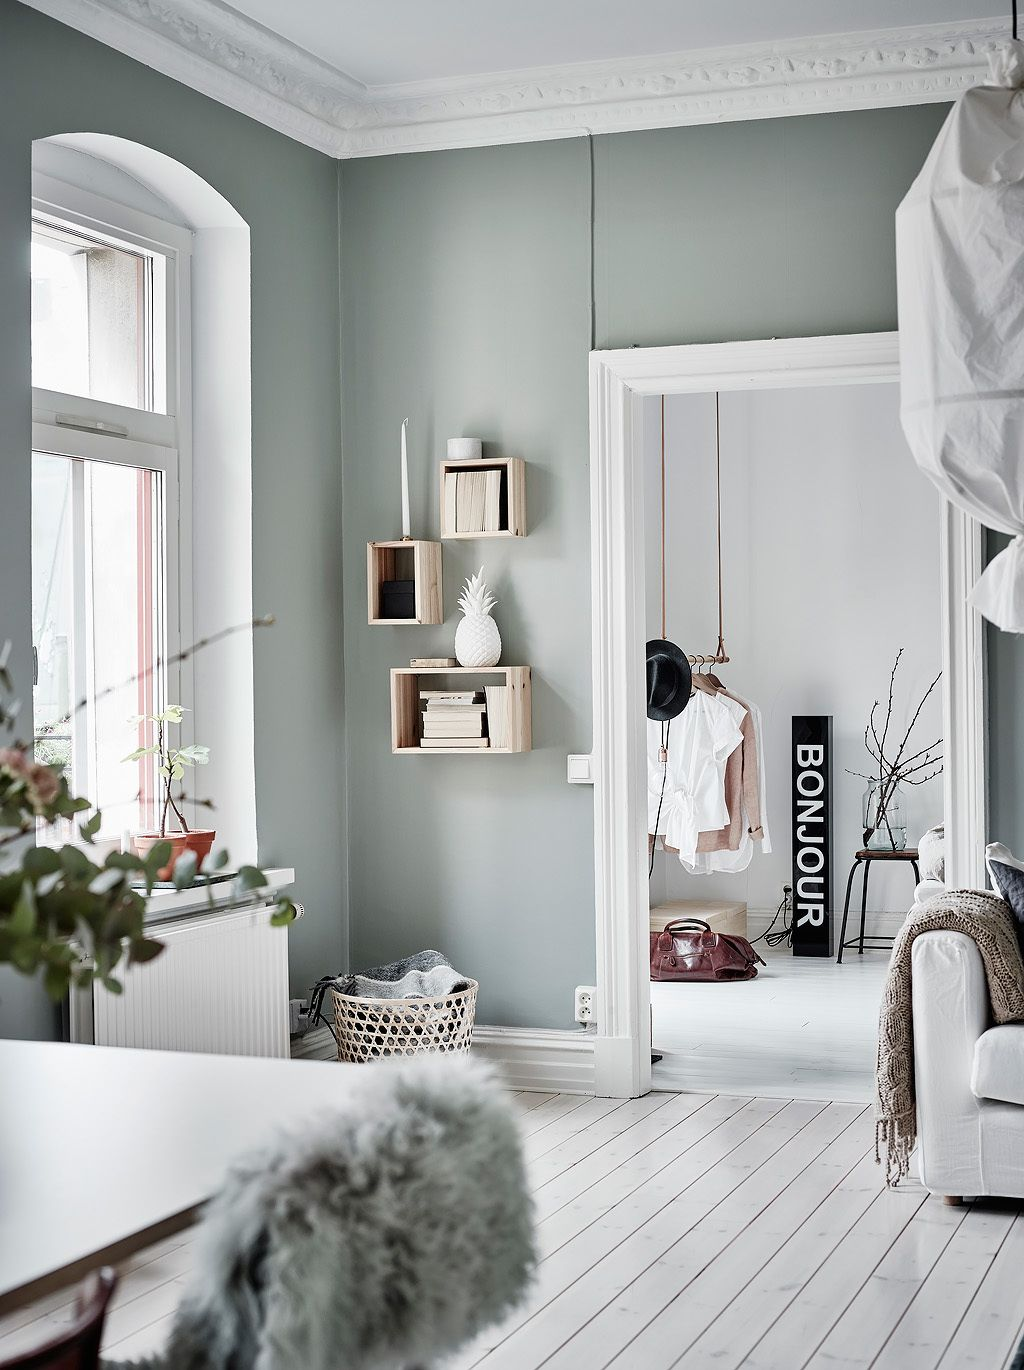 Grey and green living room - Green Grey Home With Character Via Coco Lapine Design